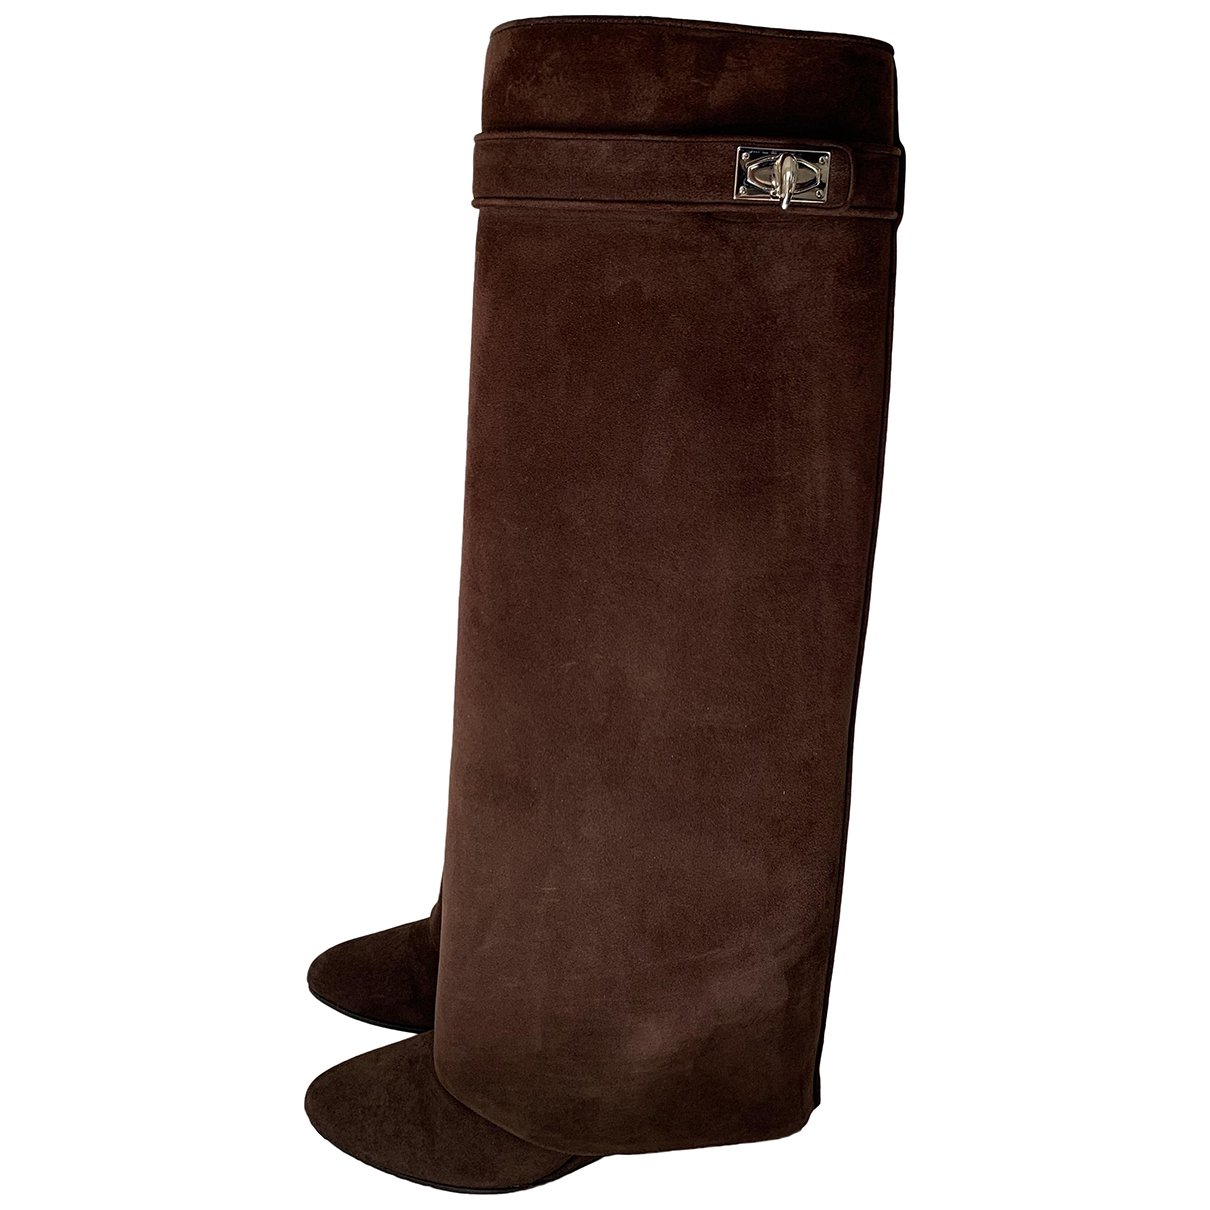 Givenchy Shark Brown Suede Boots for Women 37 EU